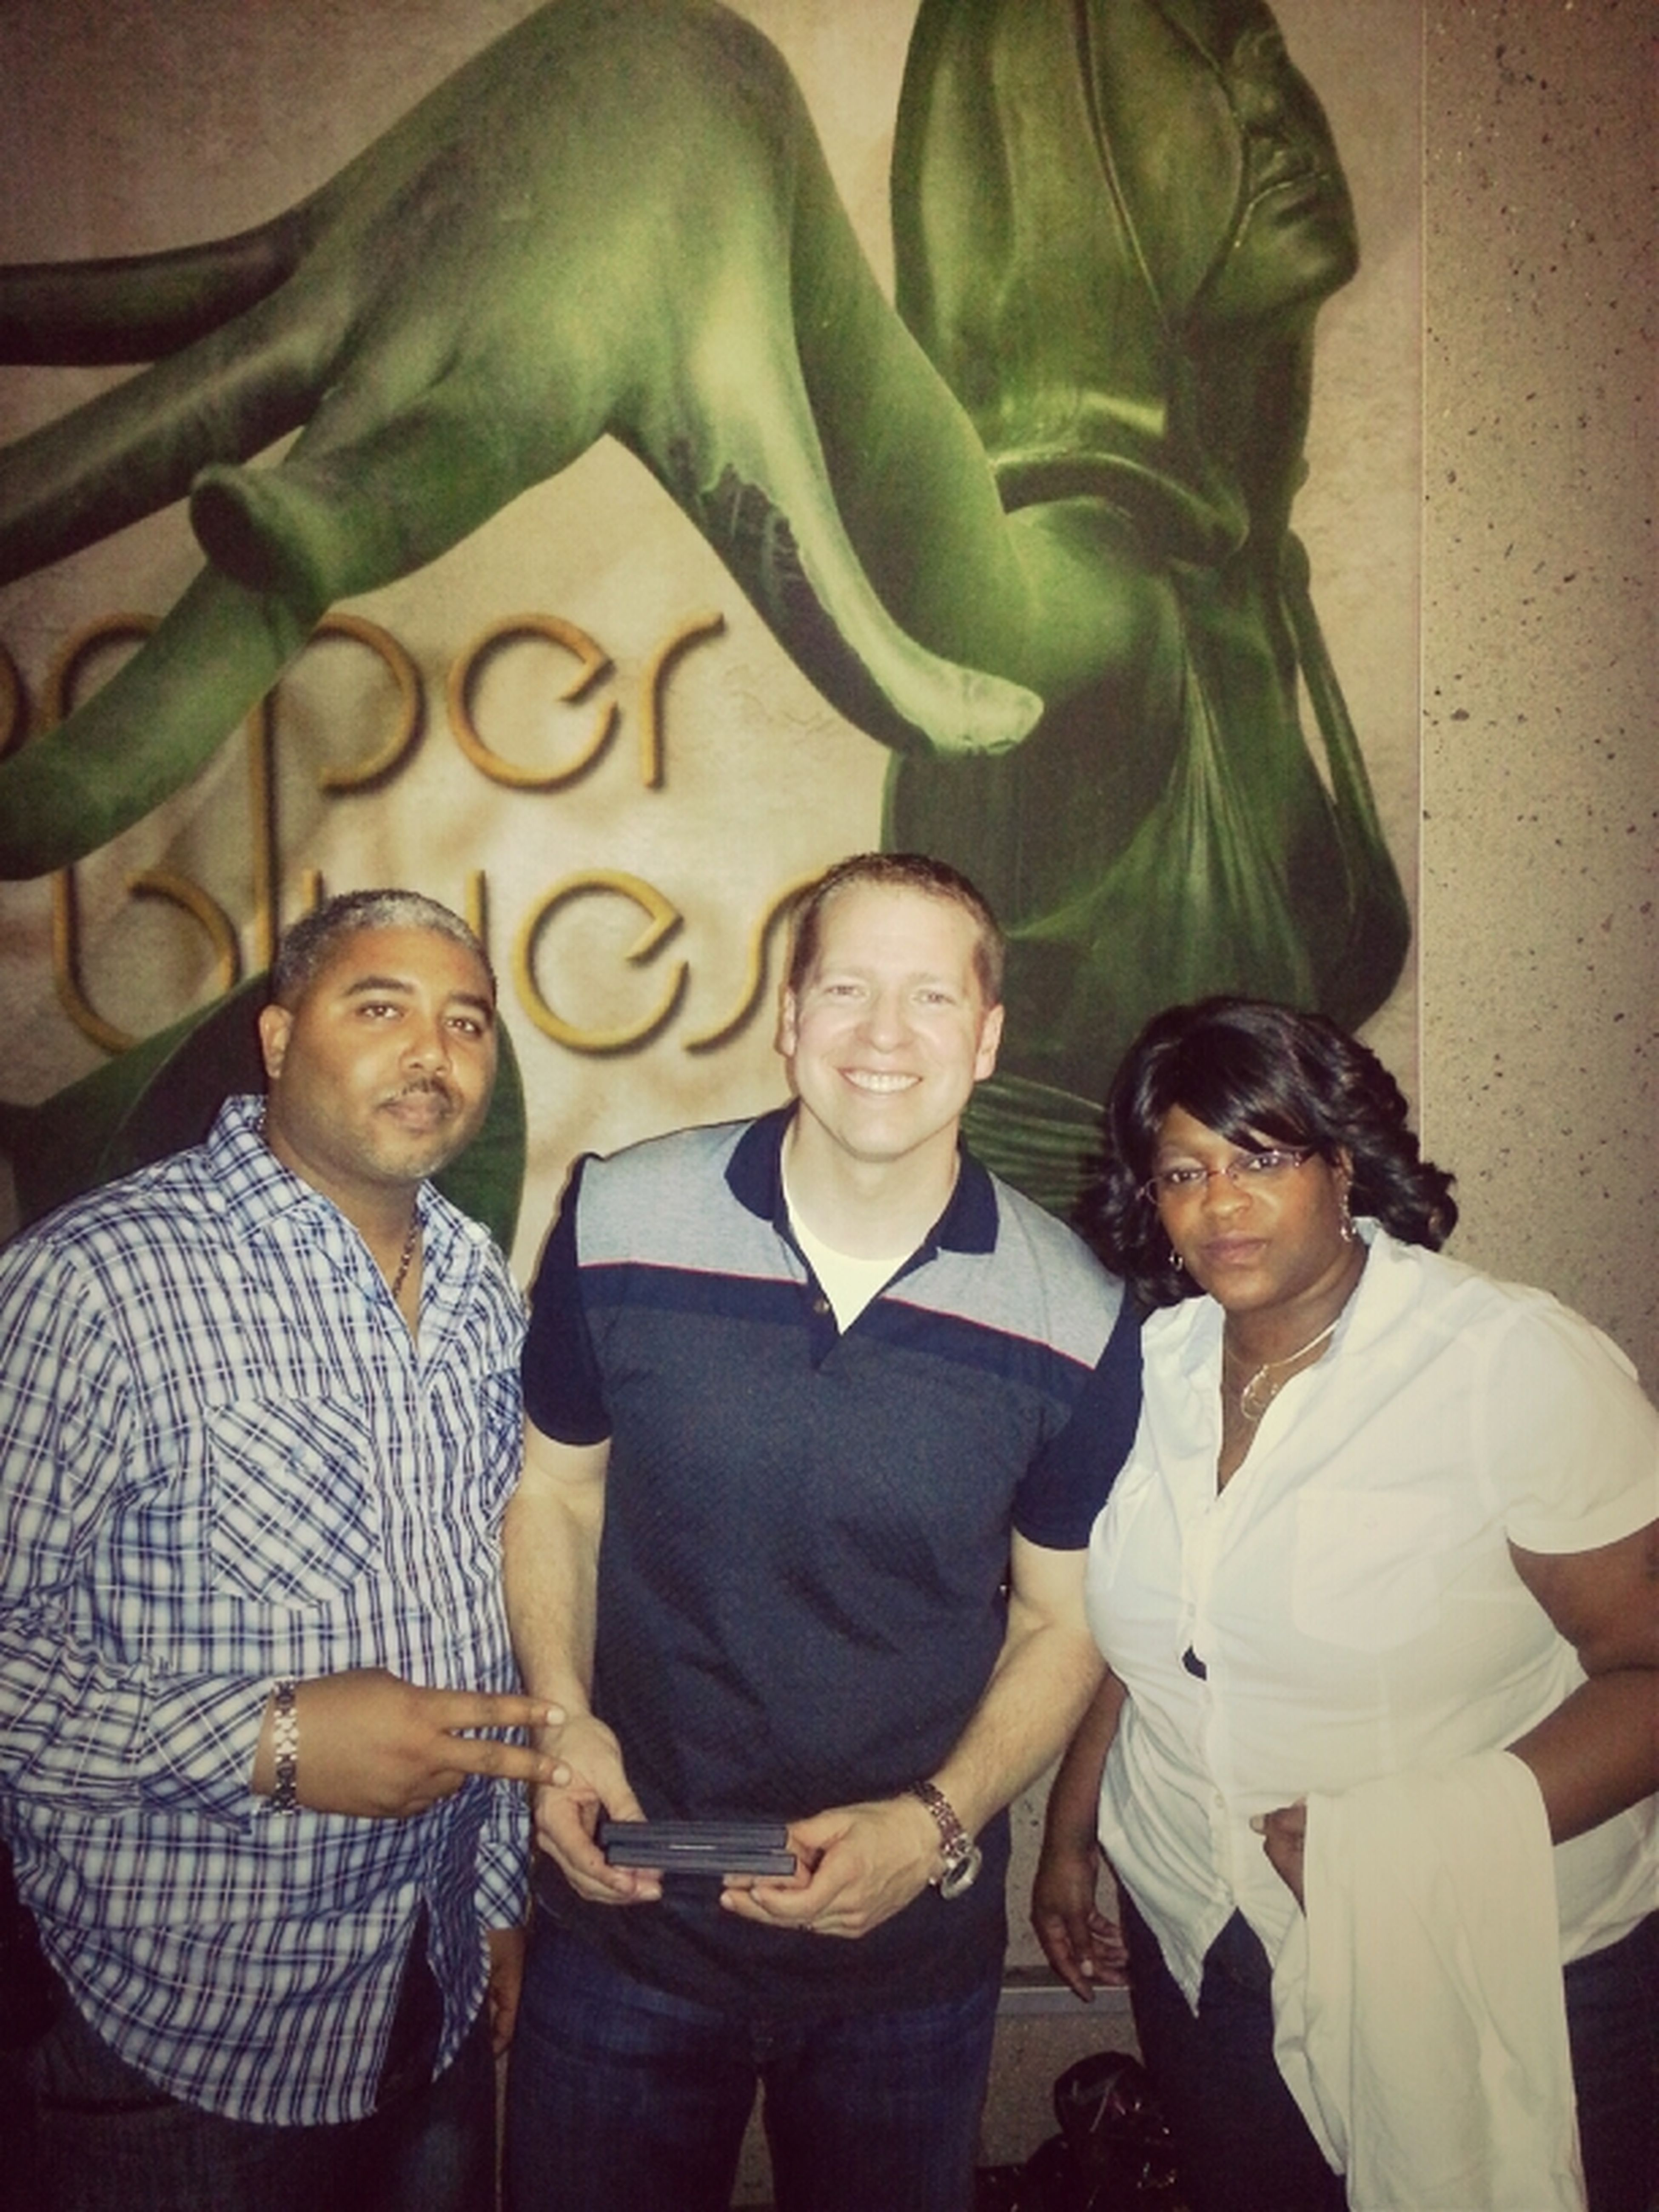 That's Me And My Baby With Gary Owens Last Sat Night.